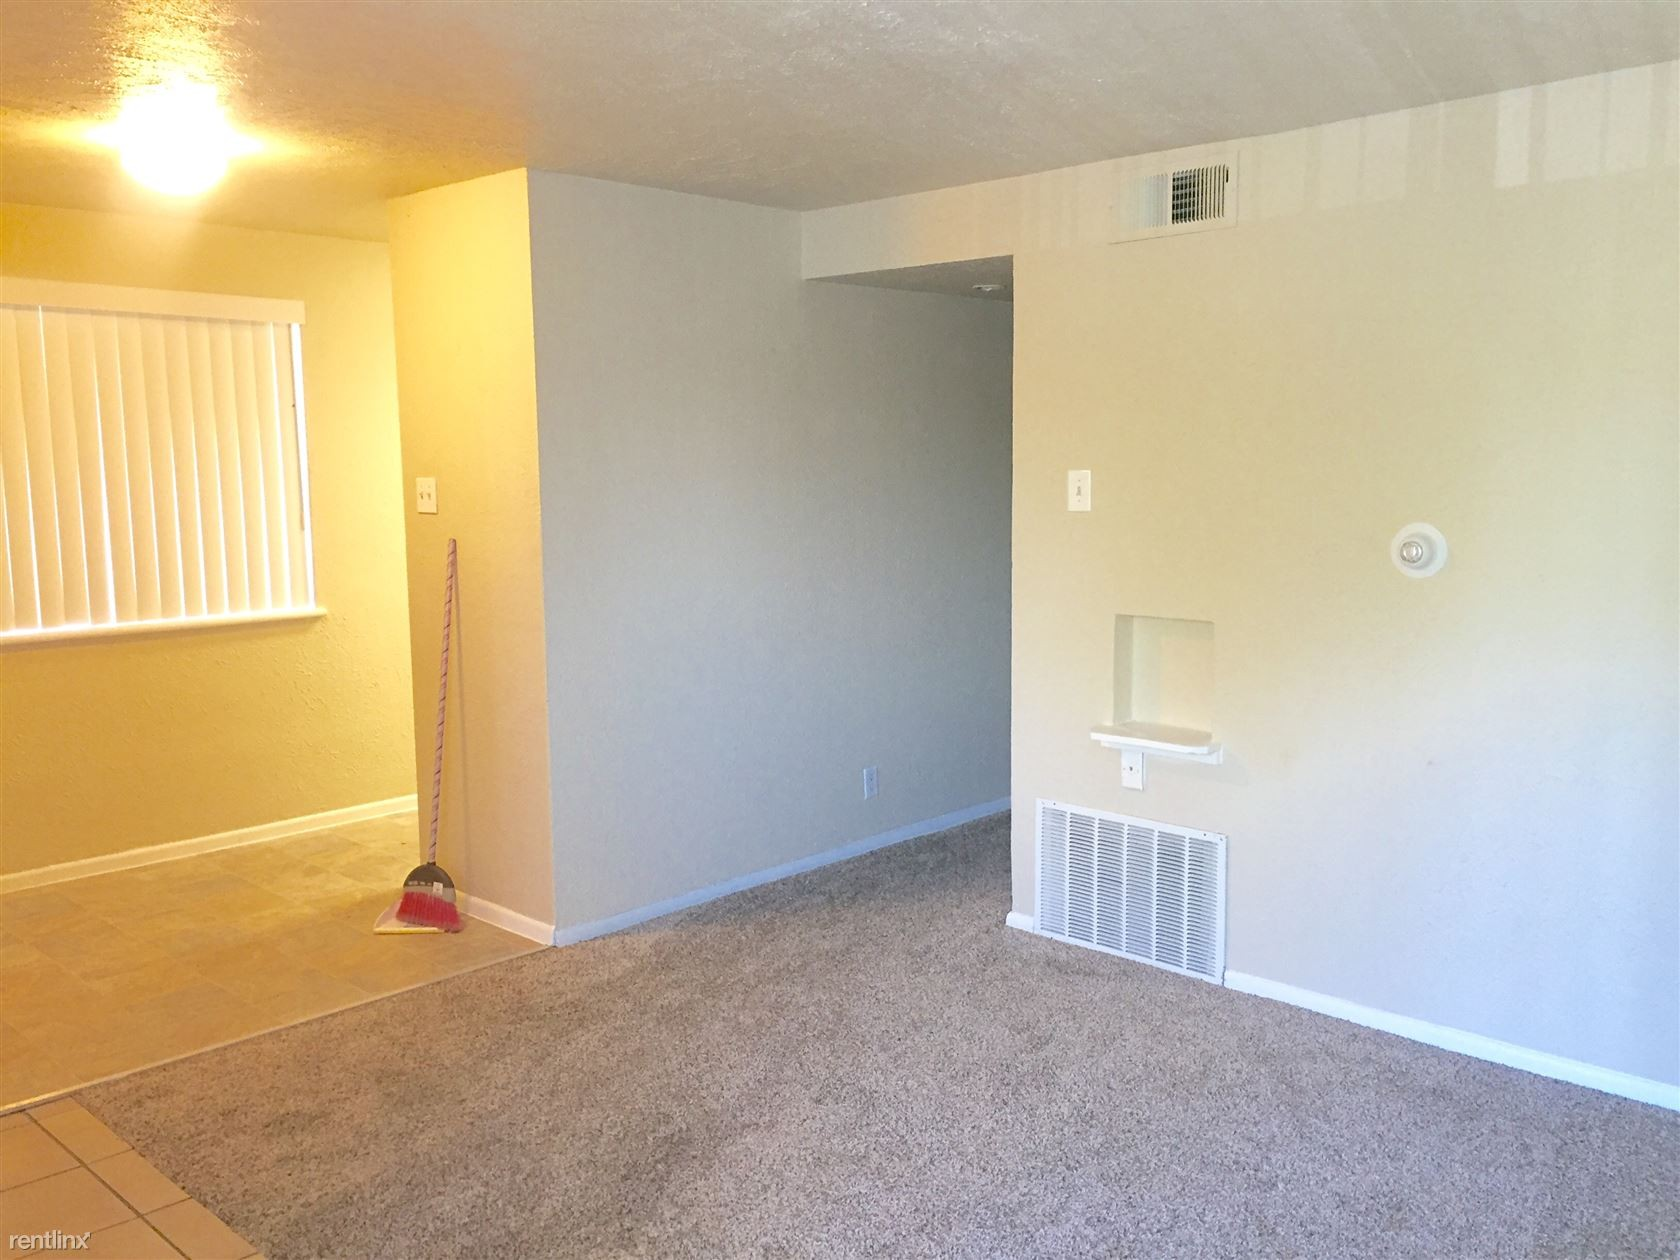 3001 california st denver co 80205 2 bedroom apartment for rent